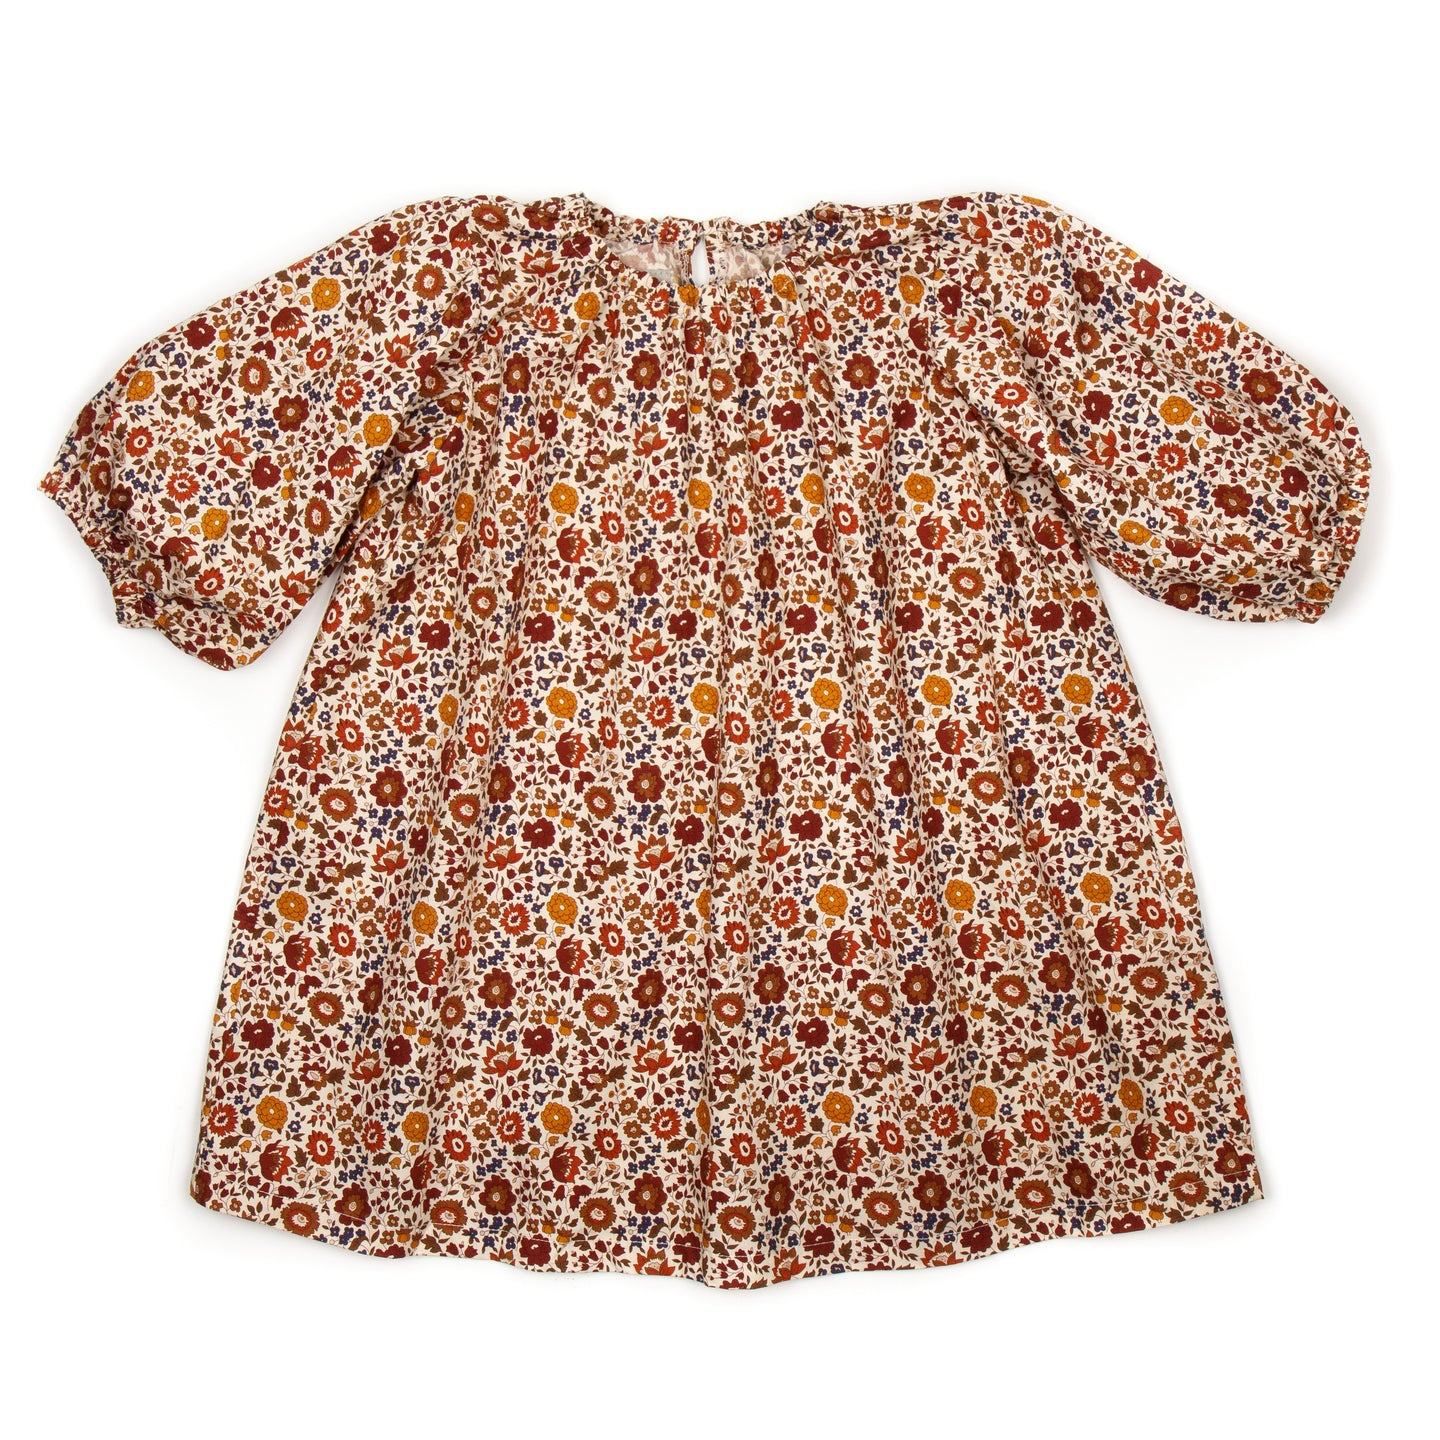 Huttelihut Kleid Liberty London Cotton